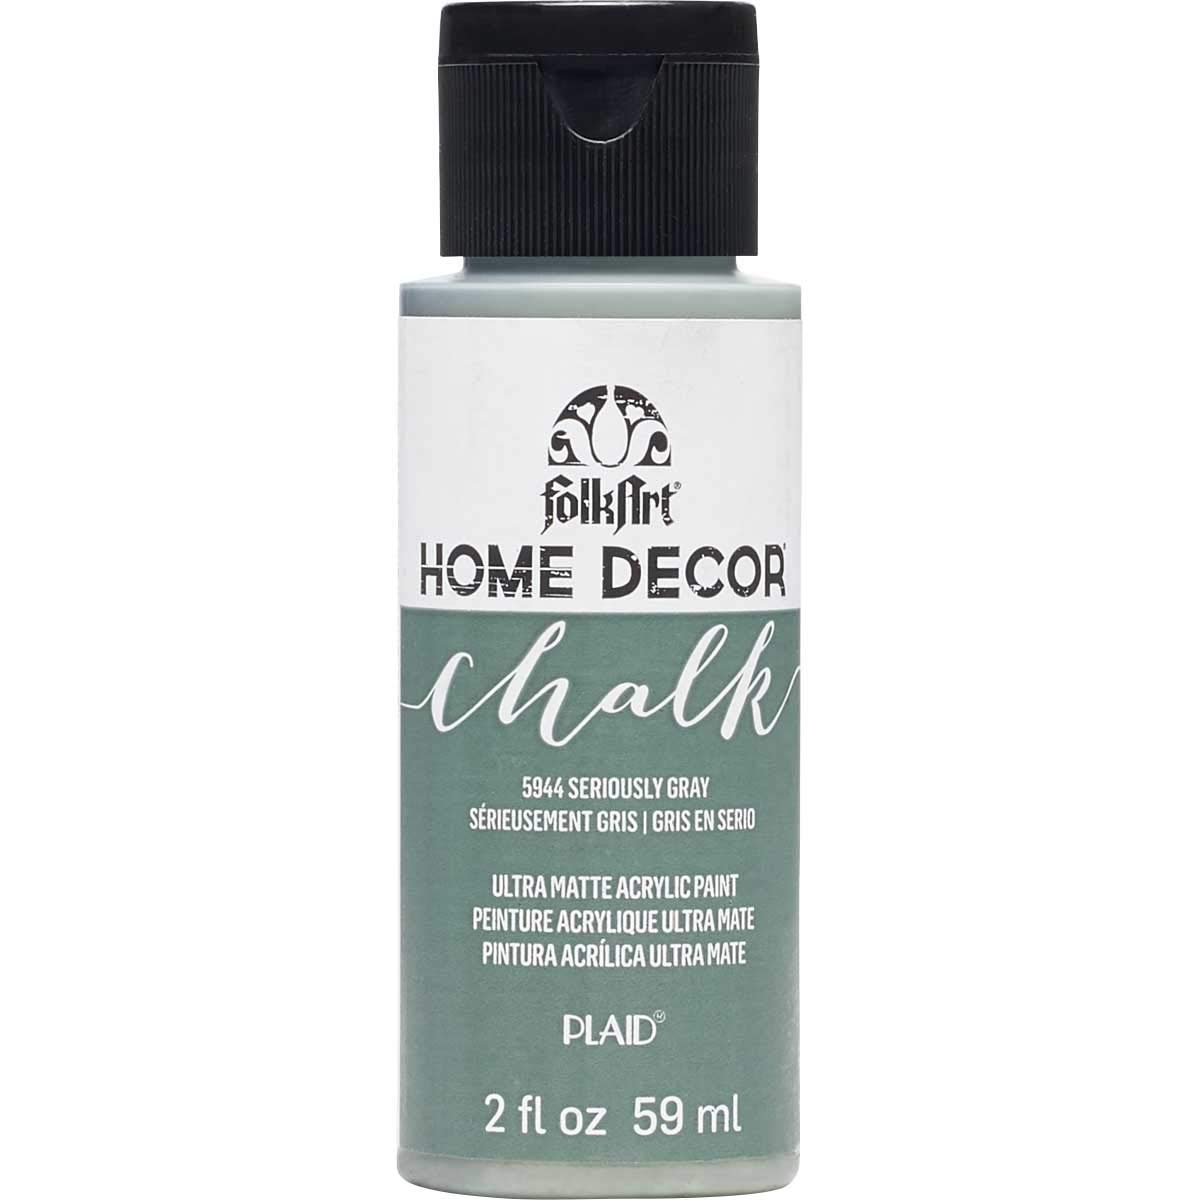 FolkArt 5944 Home Décor Chalk Furniture & Craft Paint in Assorted Colors, 2 oz, Seriously Gray